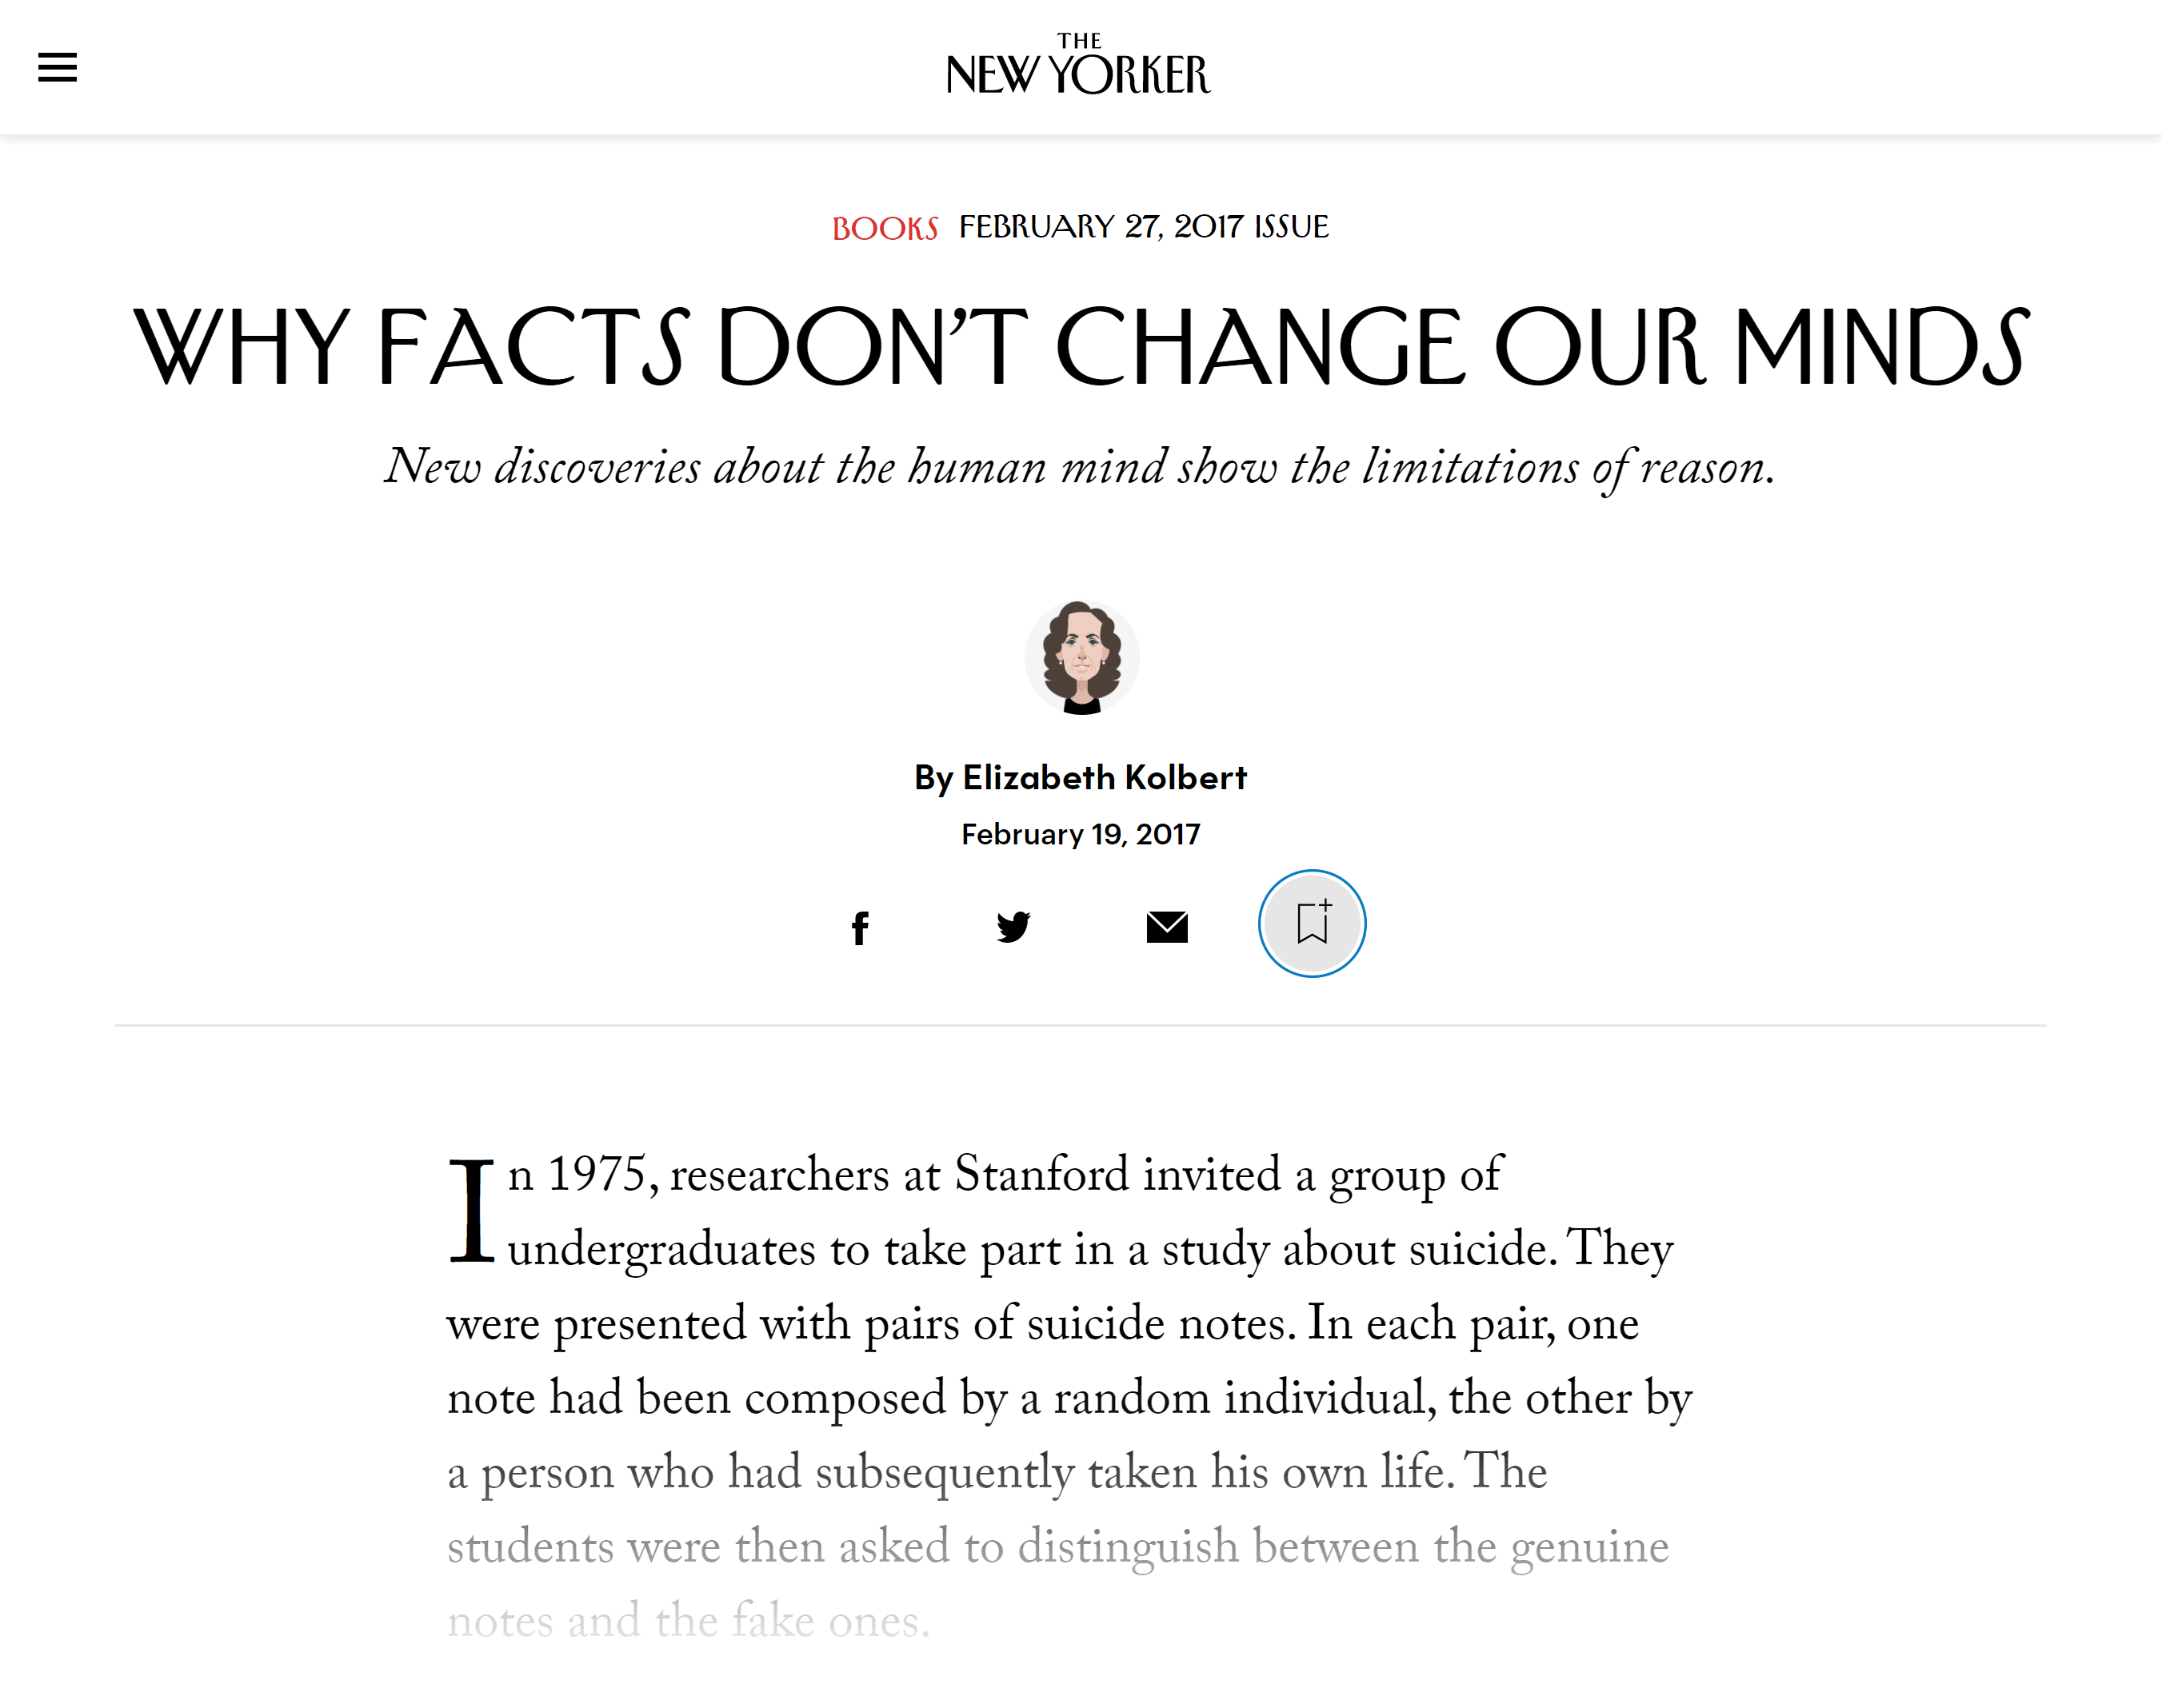 The New Yorker – Why facts don't change our minds